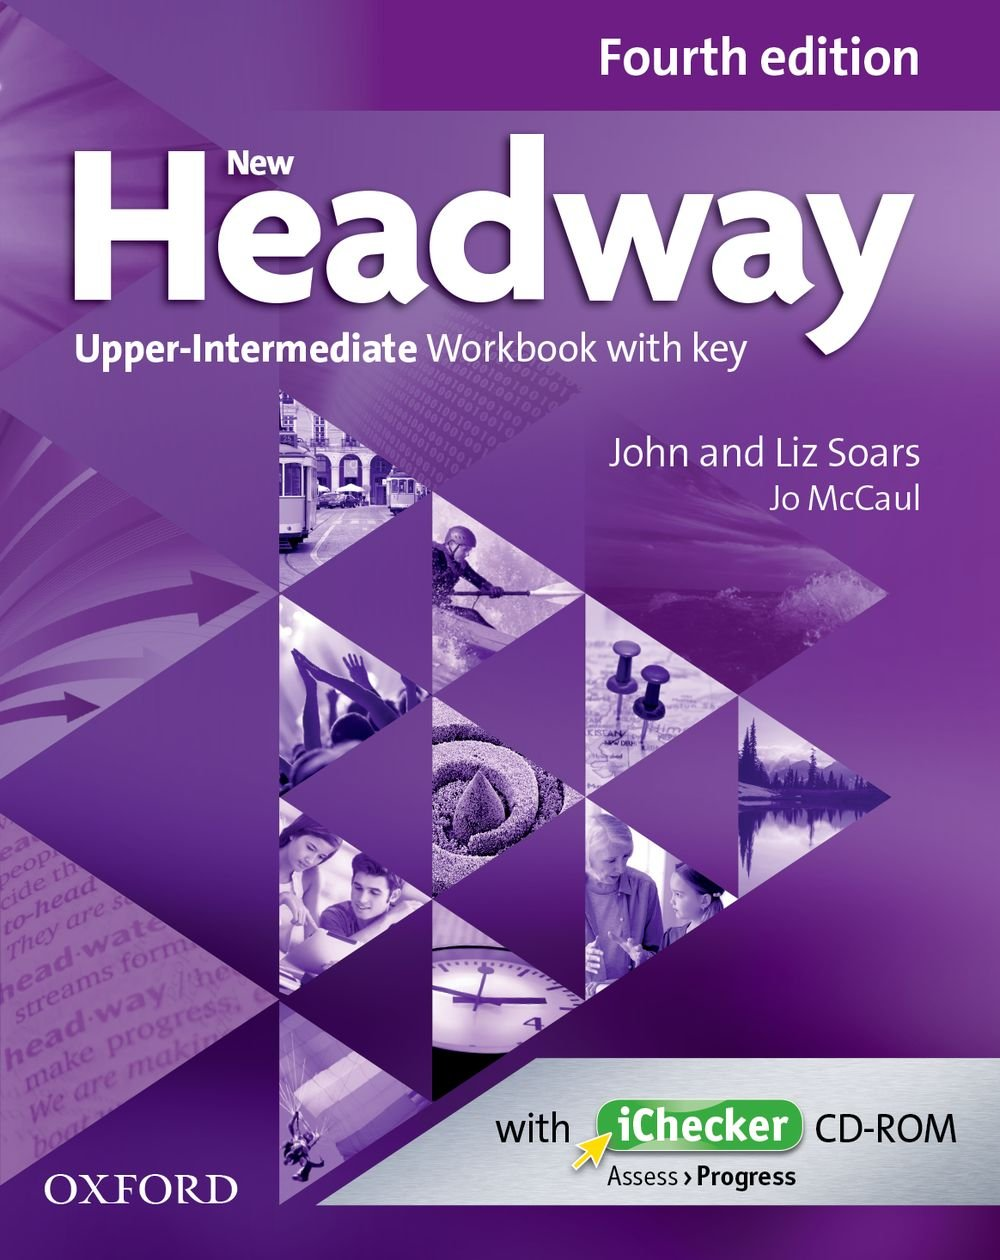 New headway upper intermediate b2 workbook ichecker with key new headway upper intermediate b2 workbook ichecker with key a new digital era for the worlds most trusted english course na 9780194718882 fandeluxe Image collections